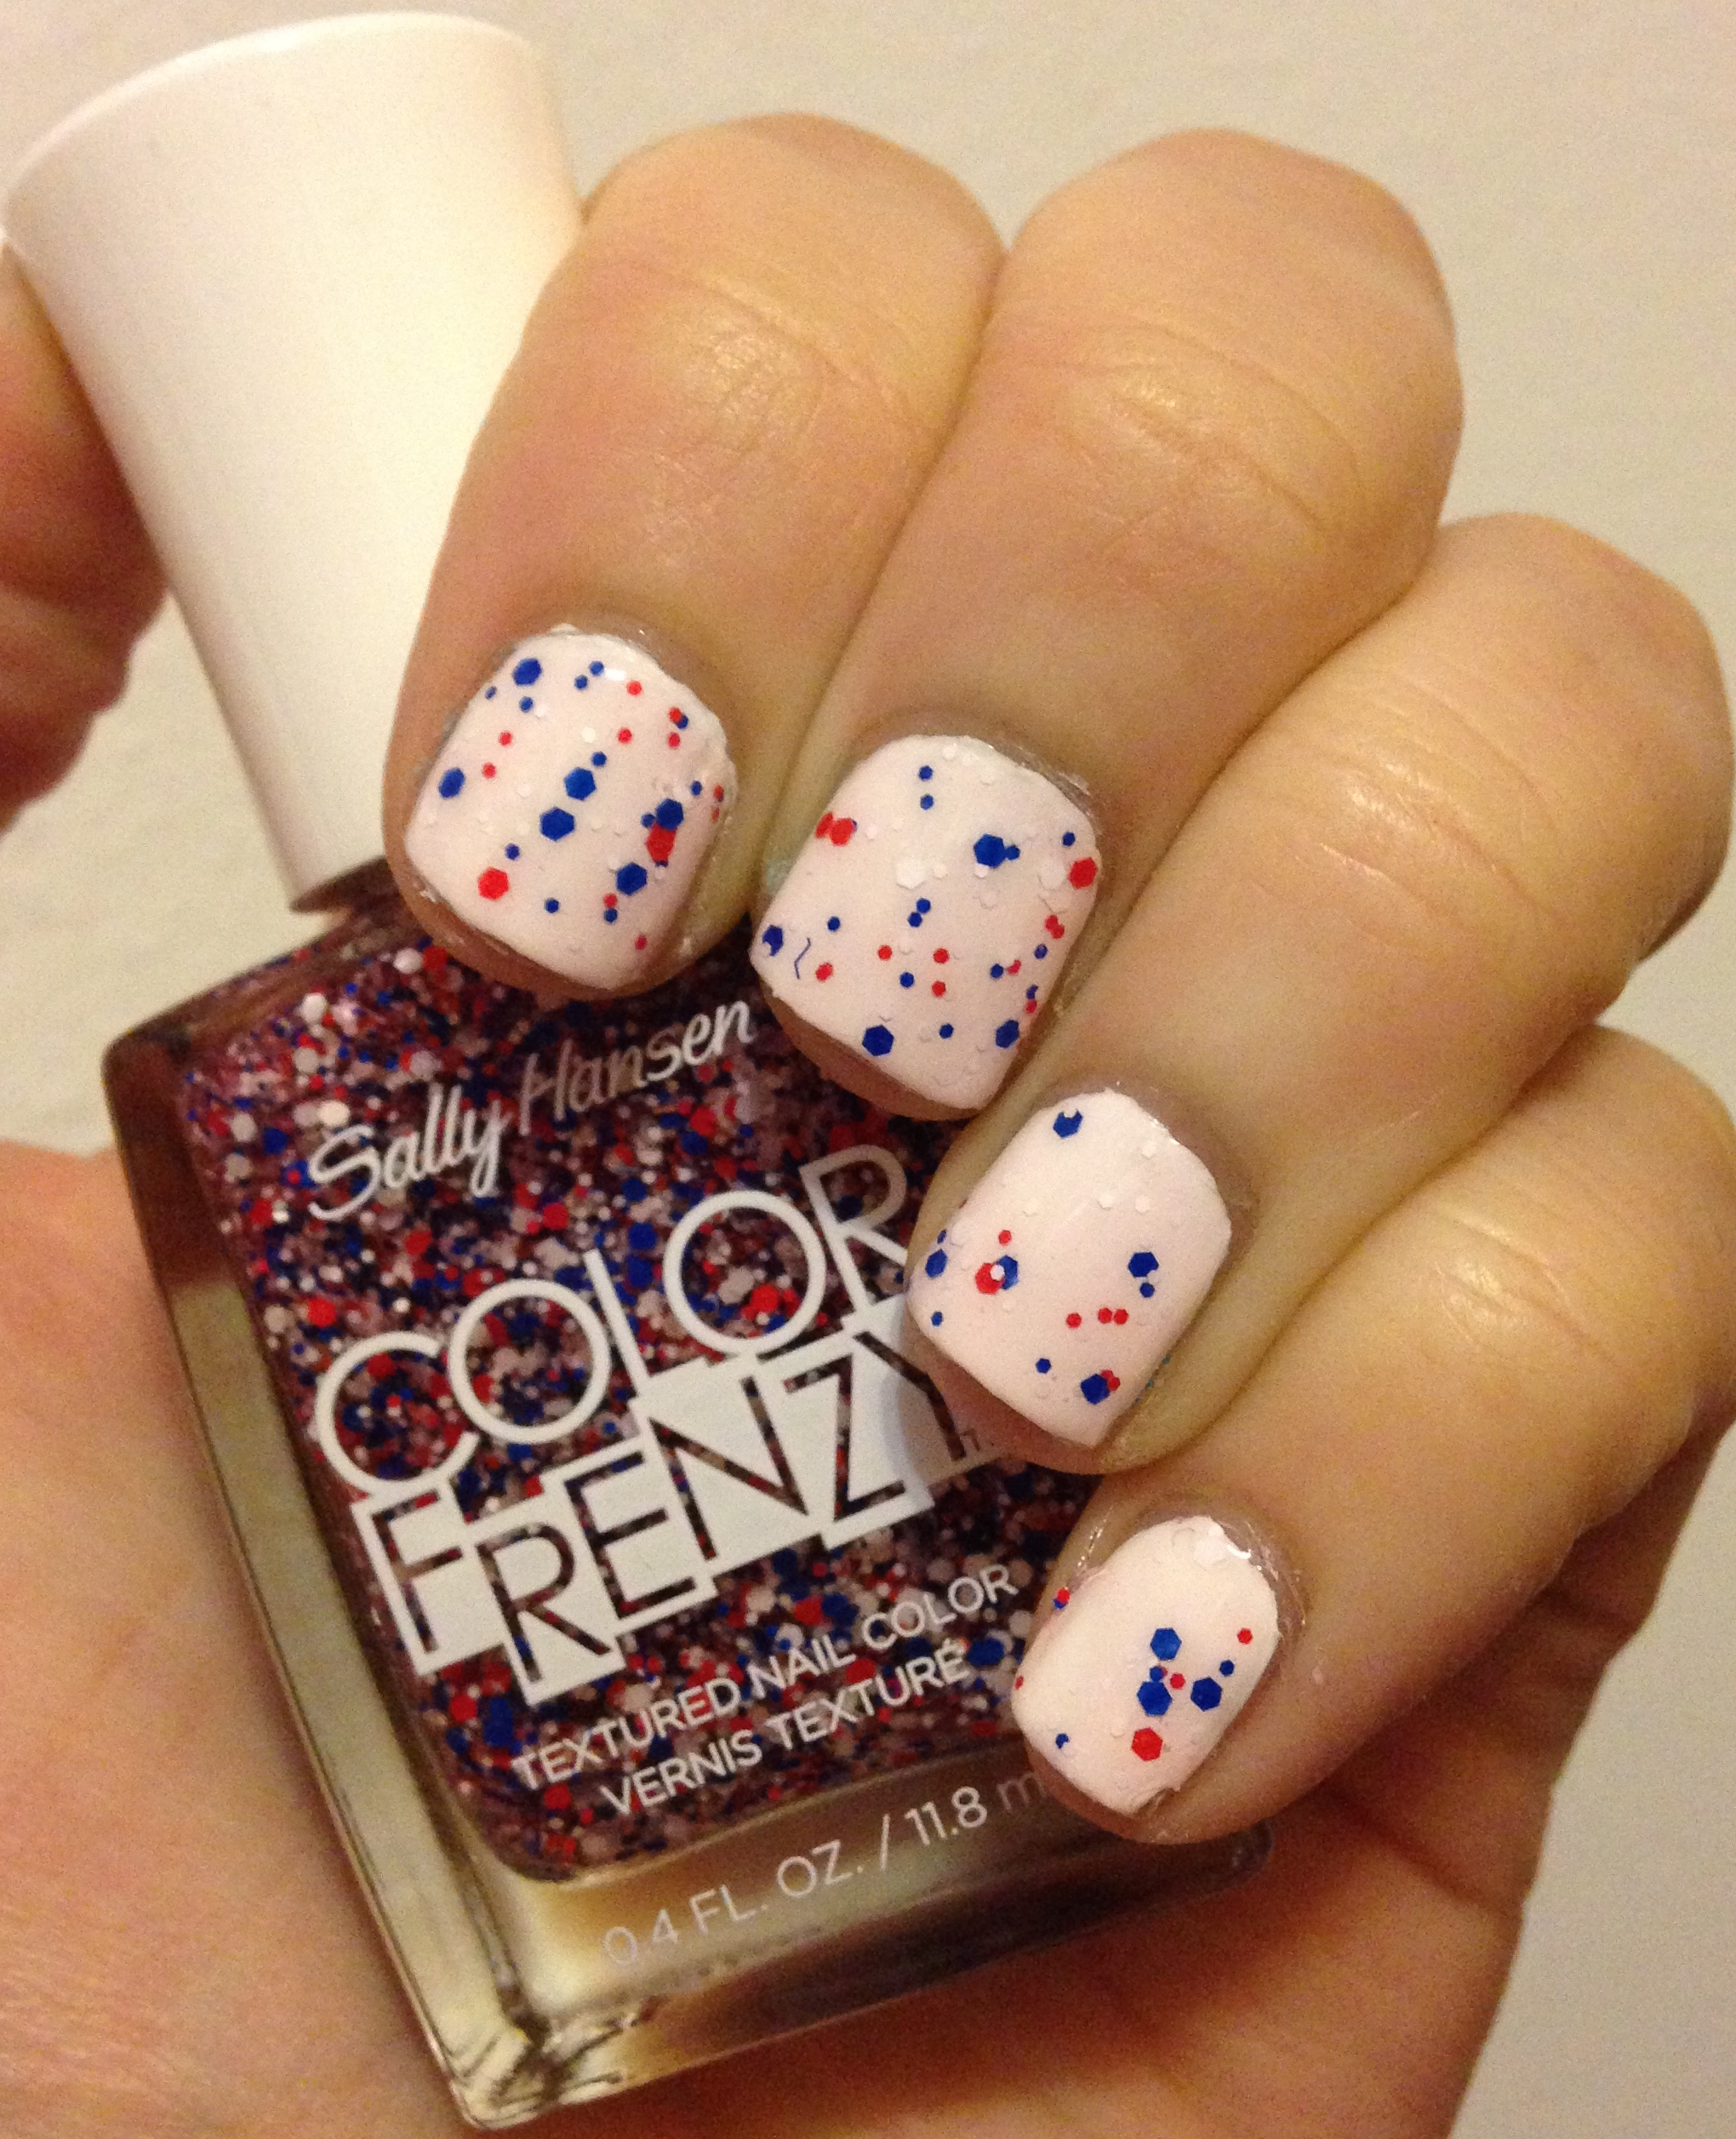 July 4th Nails with Sally Hansen Color Frenzy in Red, White & Hue ...